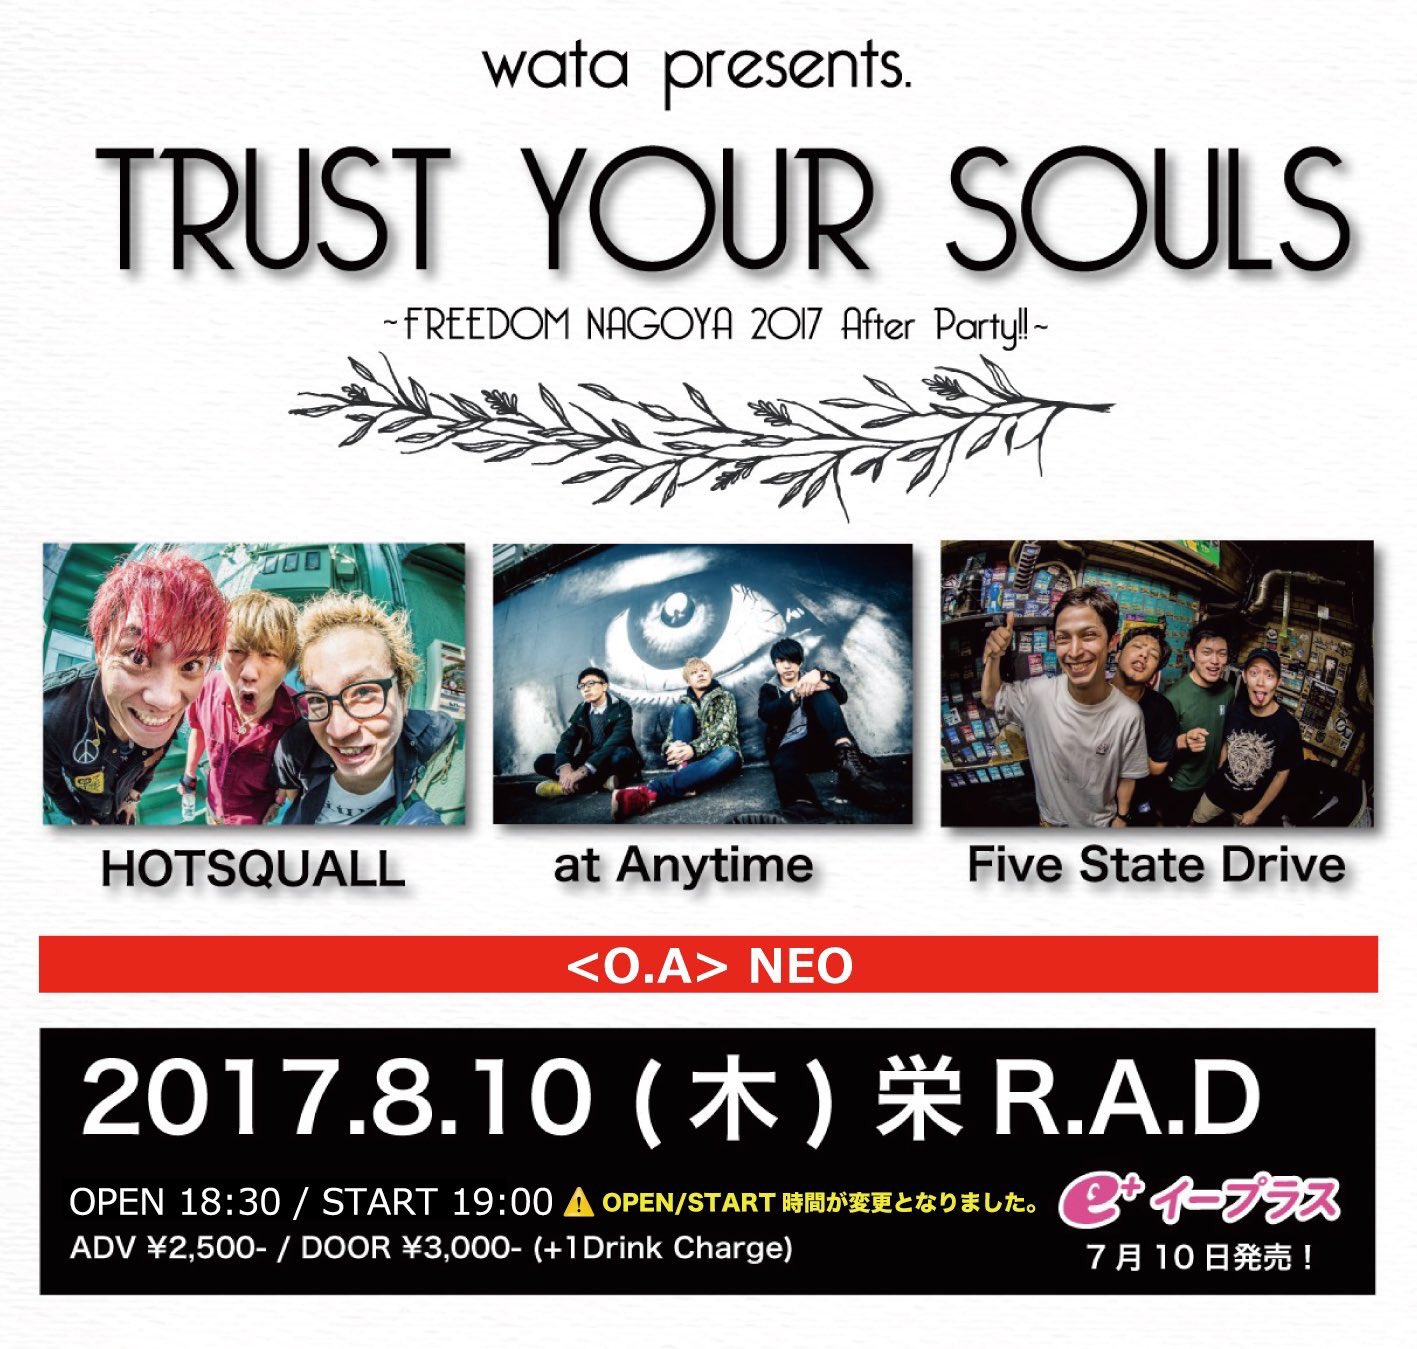 TRUST YOUR SOULS -FREEDOM NAGOYA 2017 After Party!!-